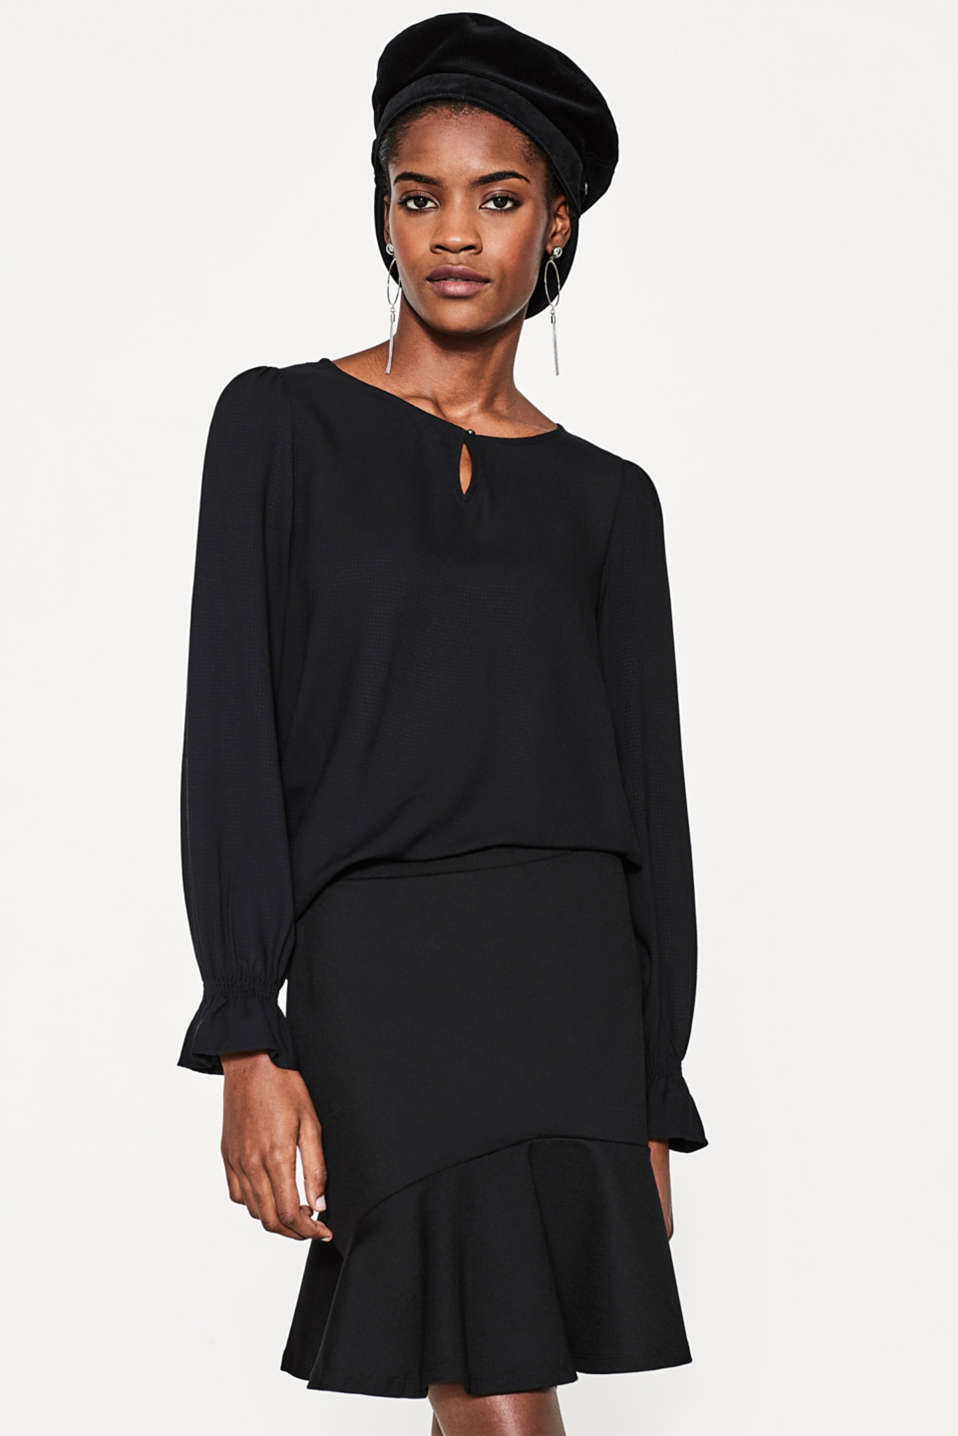 Esprit - Jacquard blouse with a shimmering texture